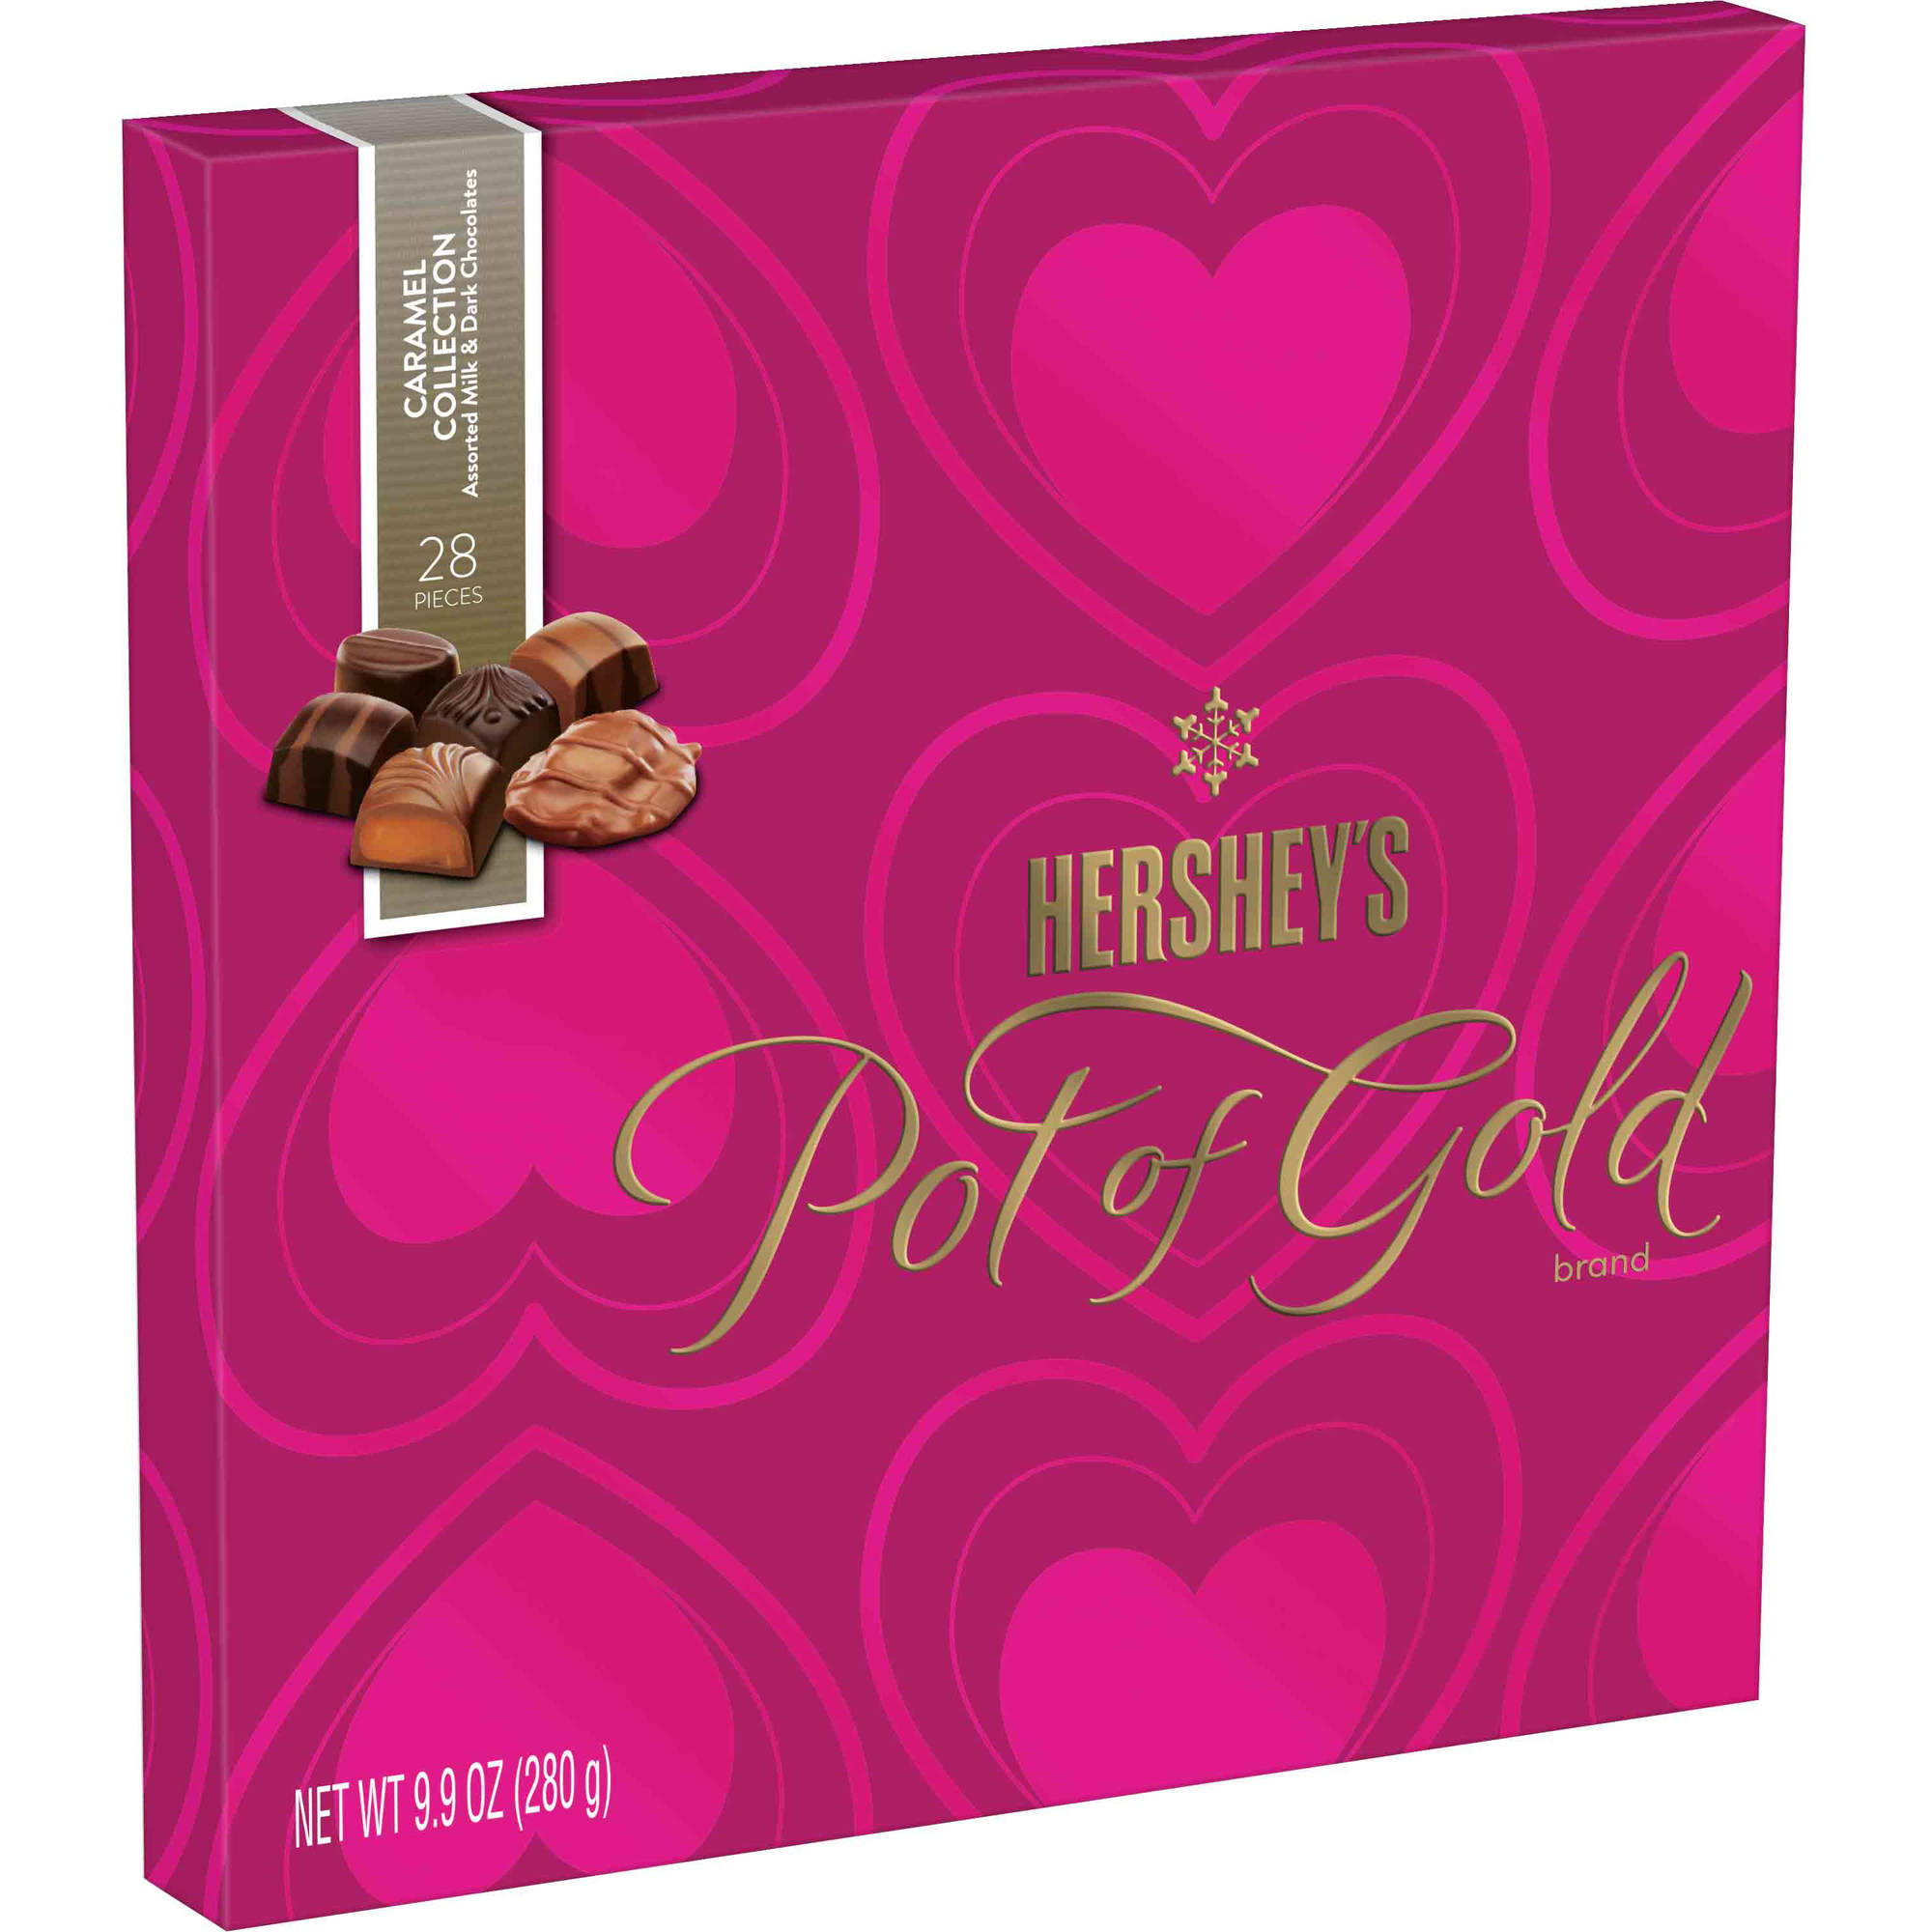 Hershey's Pot Of Gold Valentine's Milk and Dark Chocolate Caramel Collection Candy, 9.9 oz